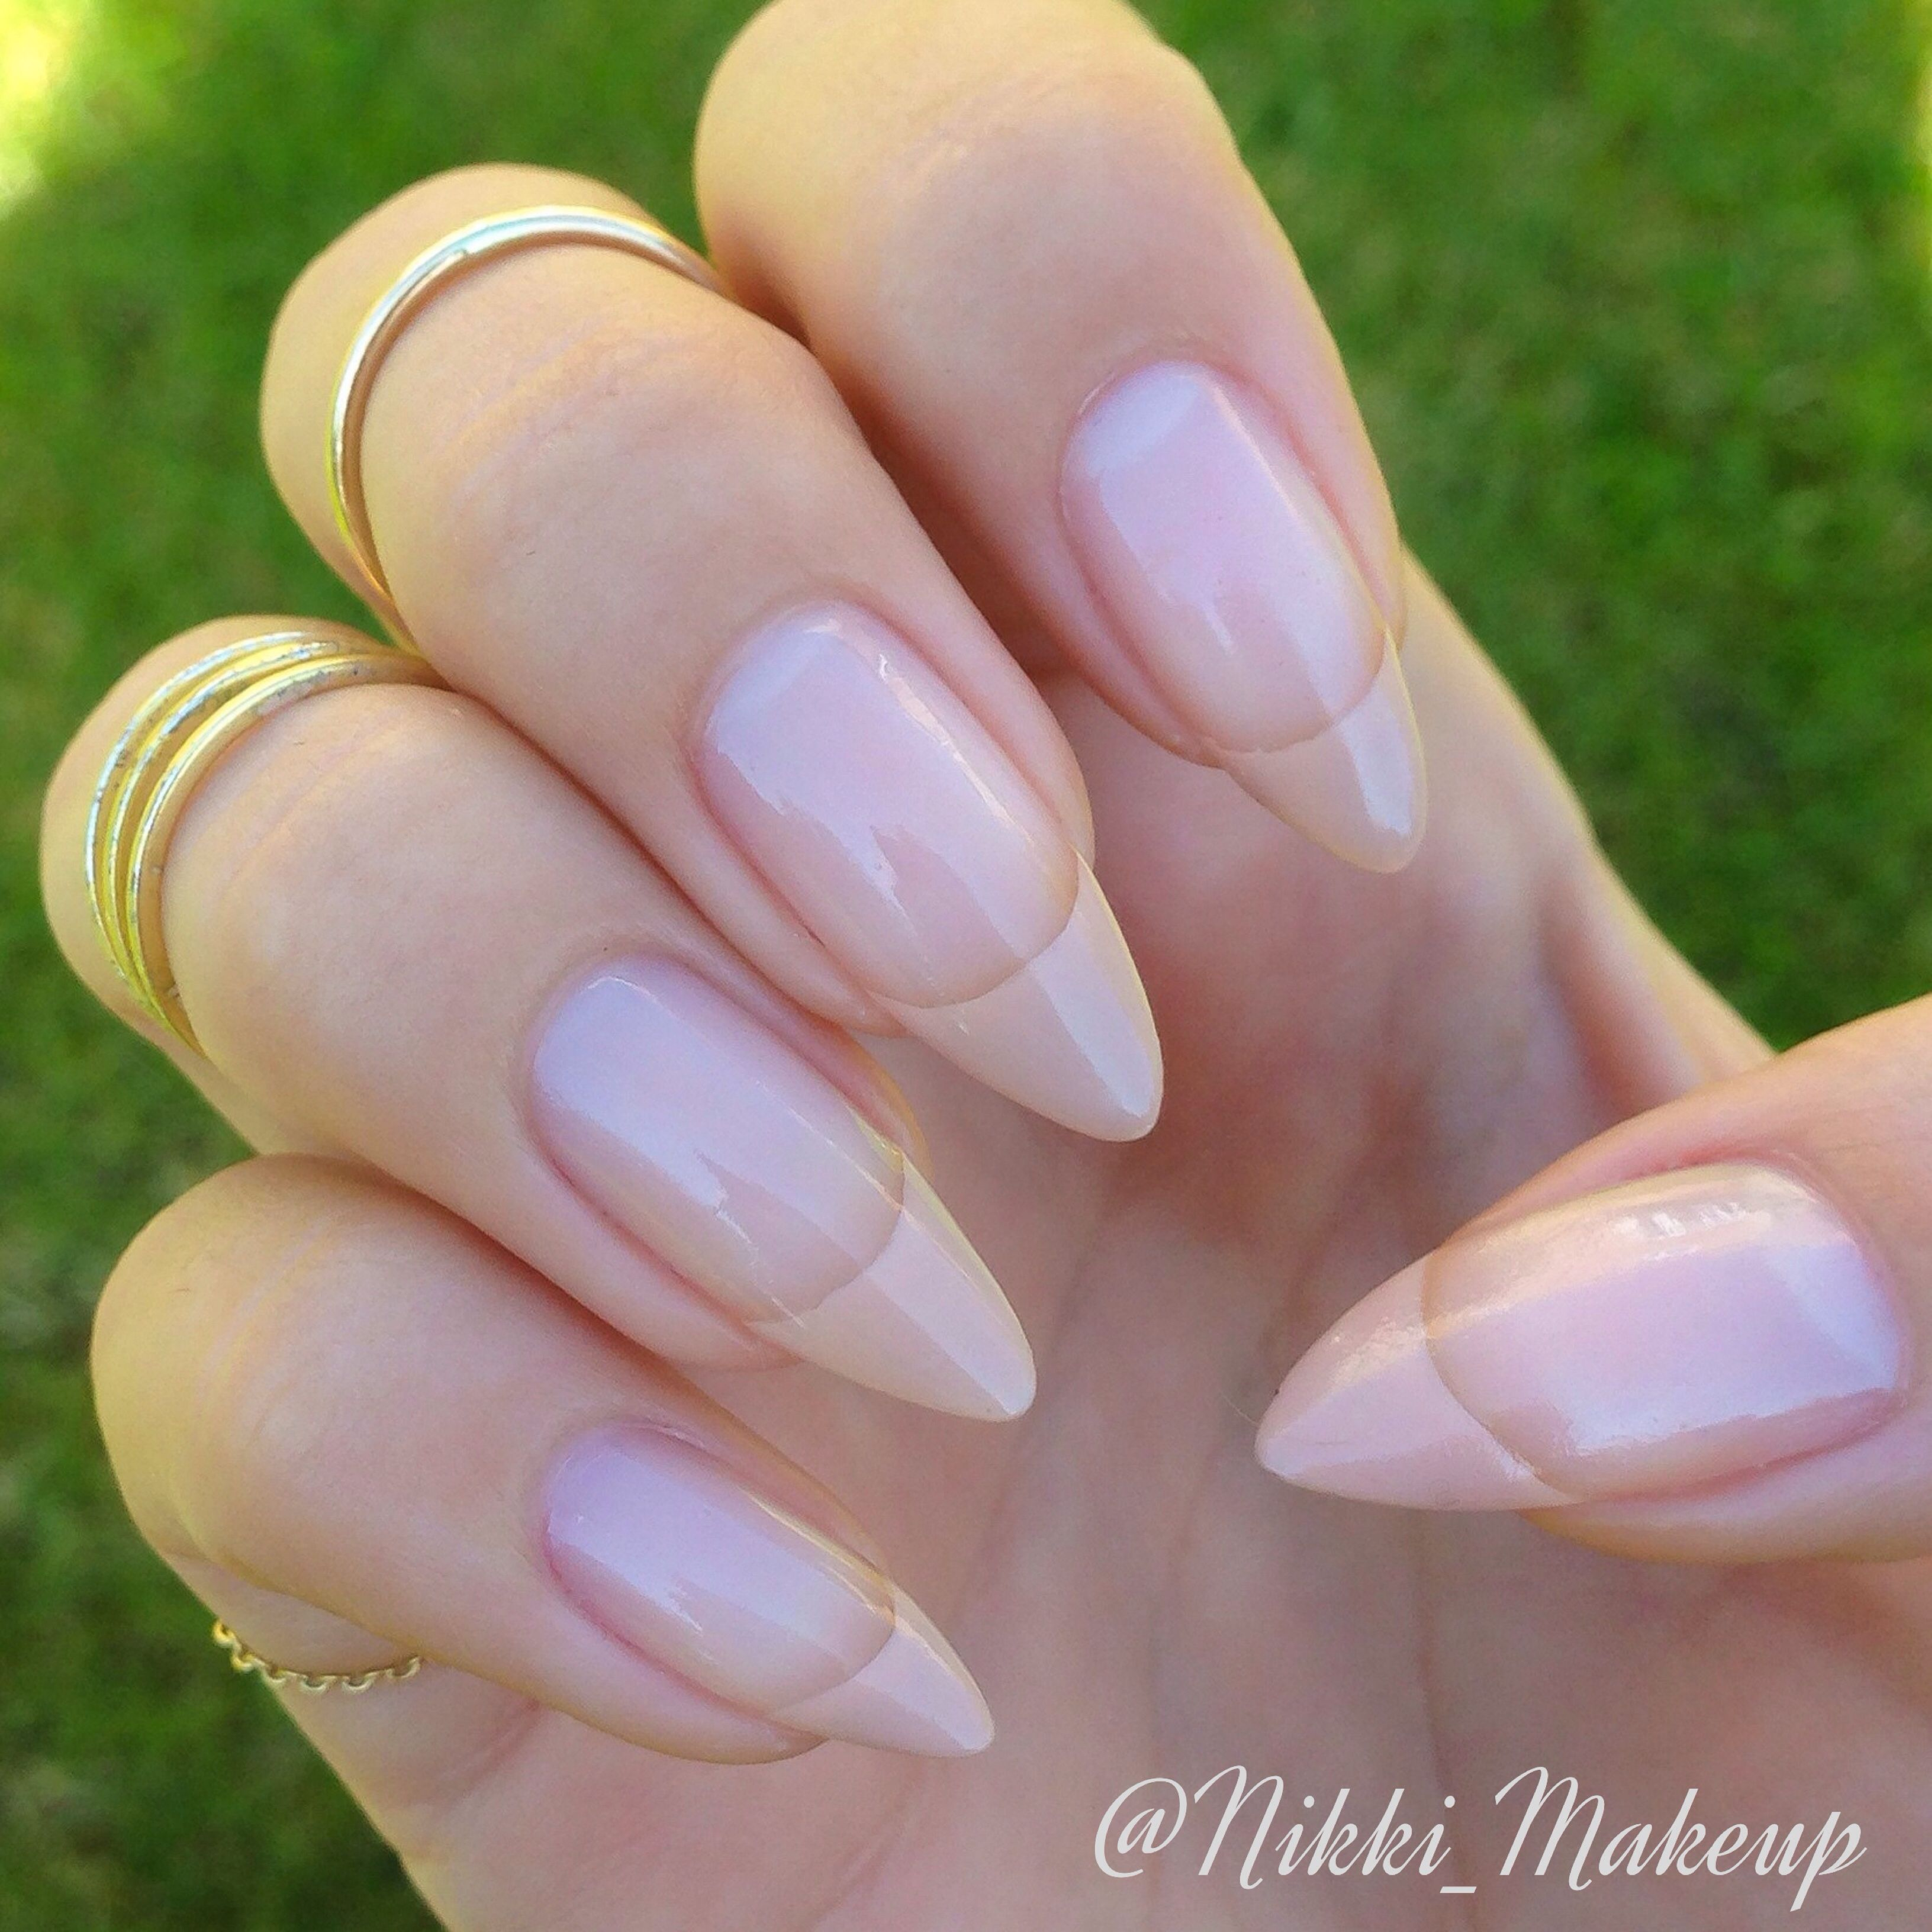 I found my new nail style. | Nails | Pinterest | Nude nails, Nude ...